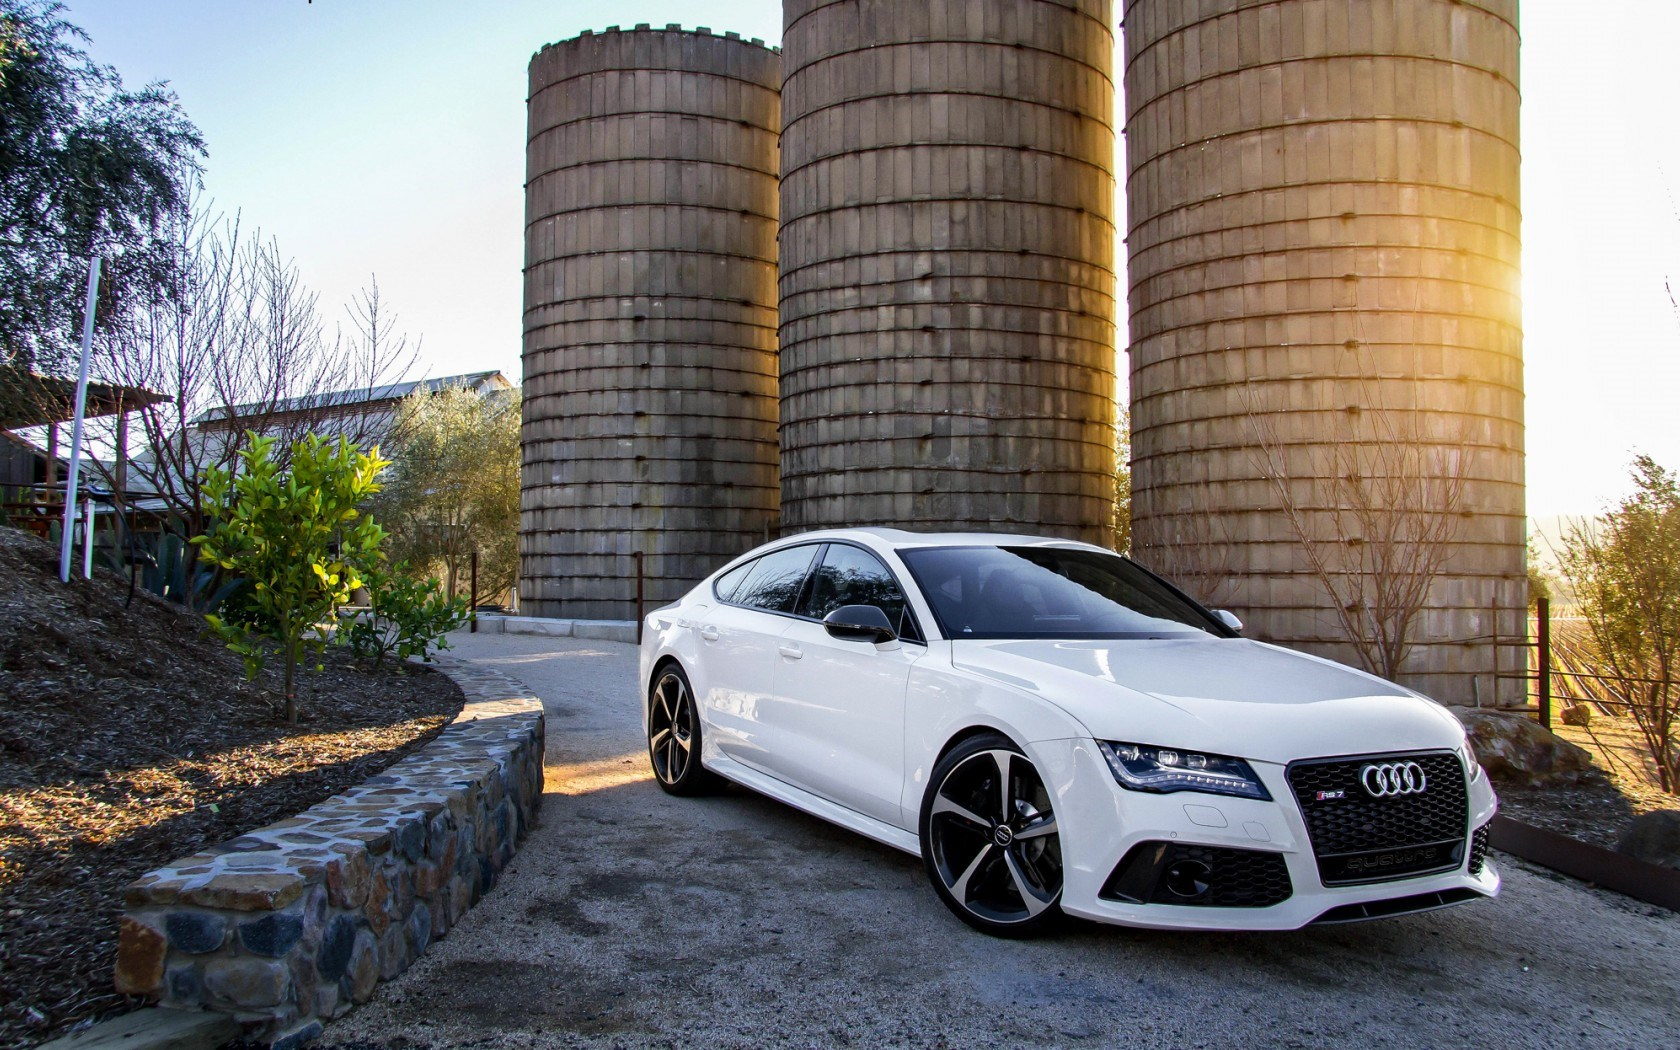 Awesome Audi RS7 Wallpaper